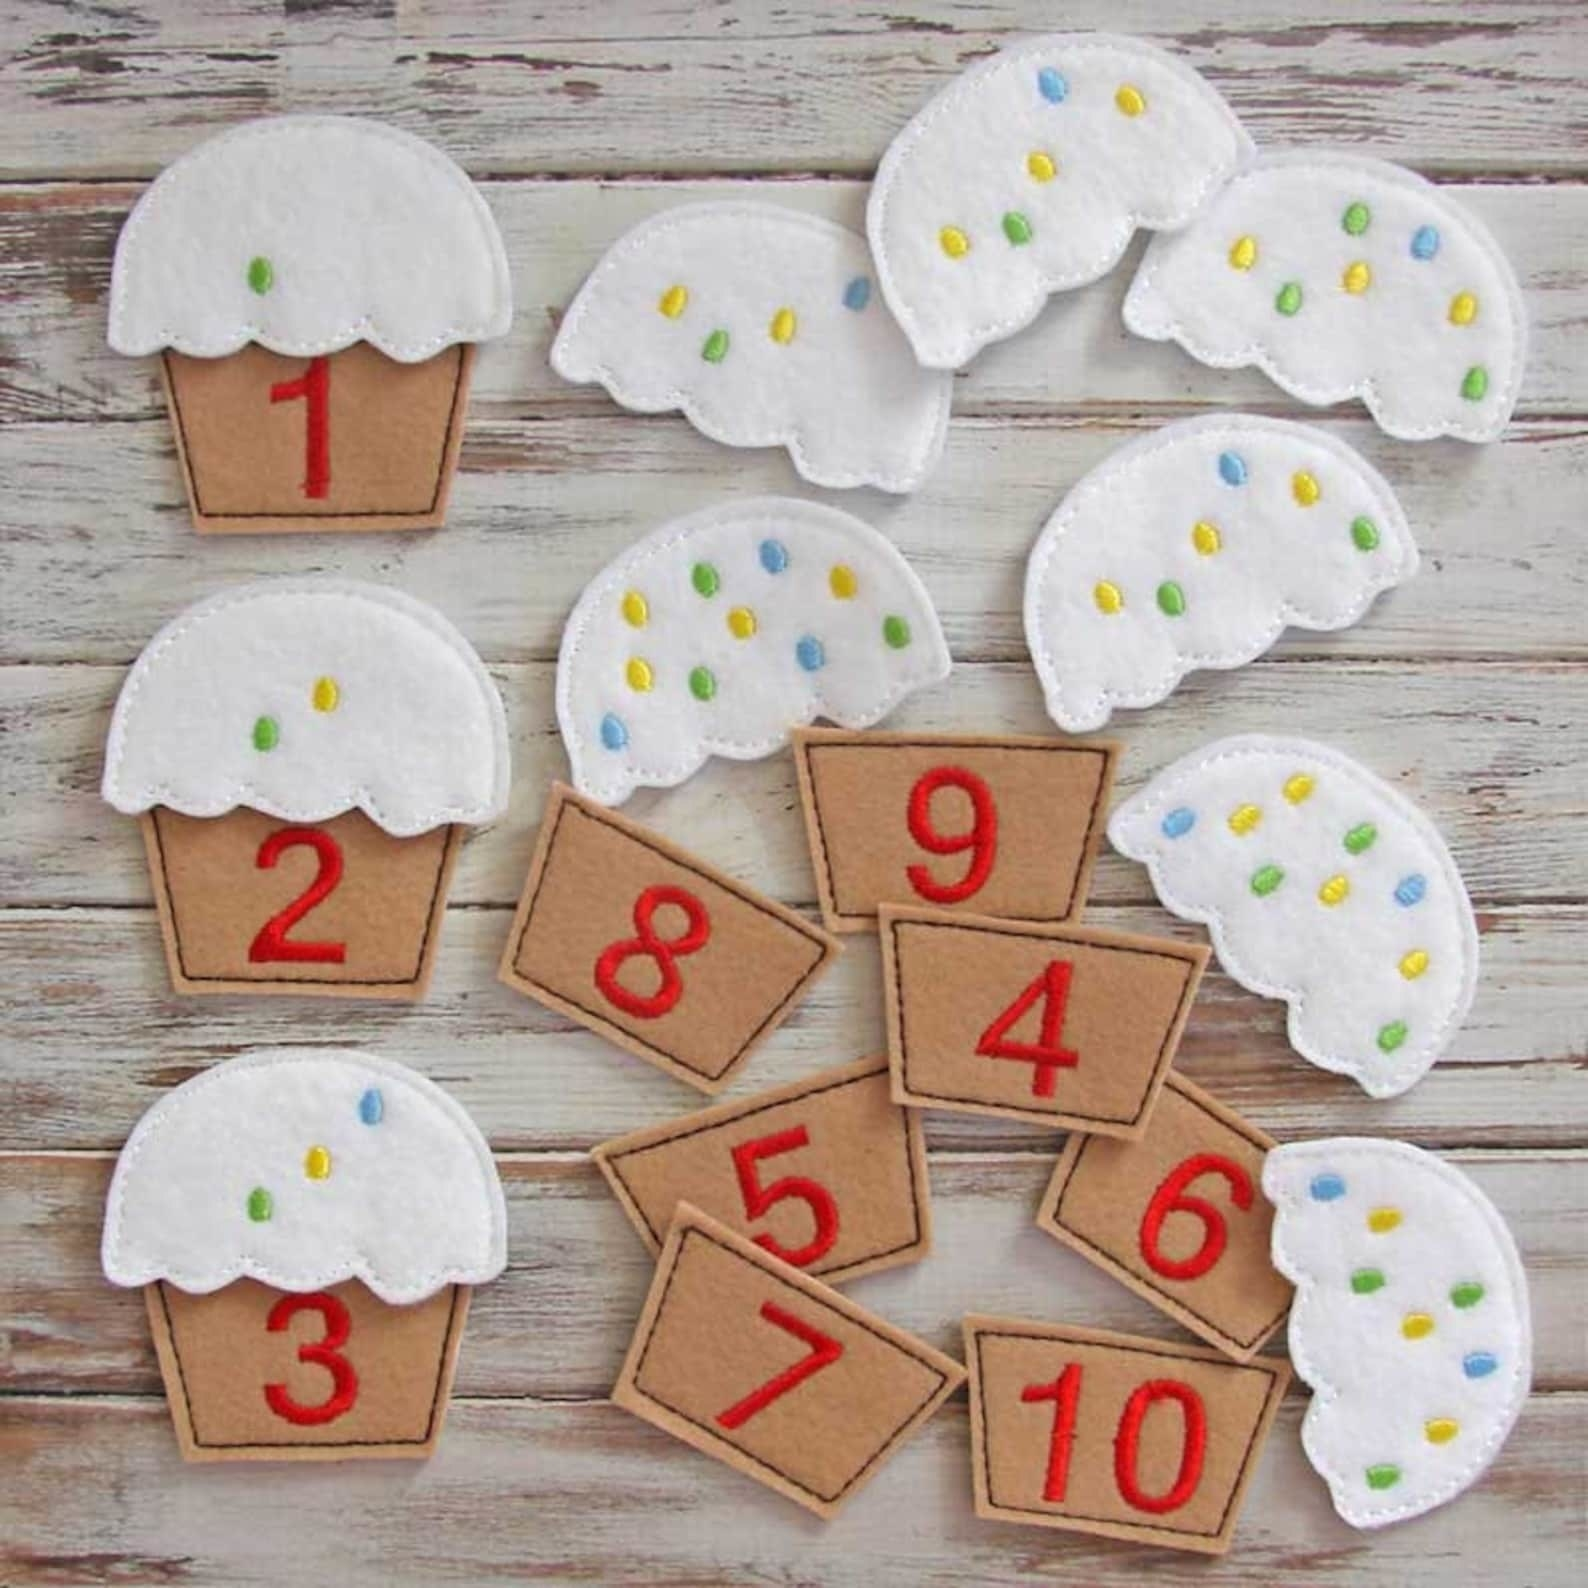 The white and brown felt cupcakes with embroidered numbers